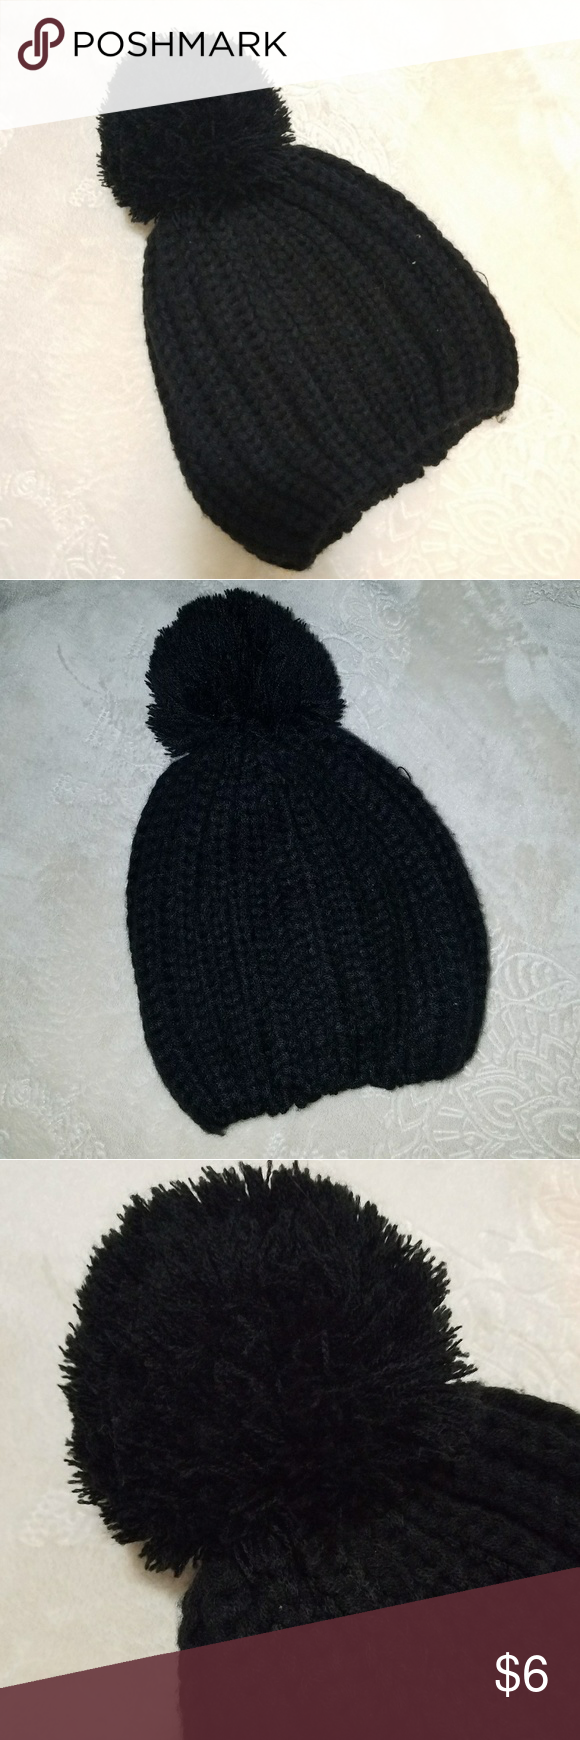 ae5387ece9 ❄Warm Knitted PuffPom Beanie Knitted. Big Puffy Knitted [Yarn] Pin ...